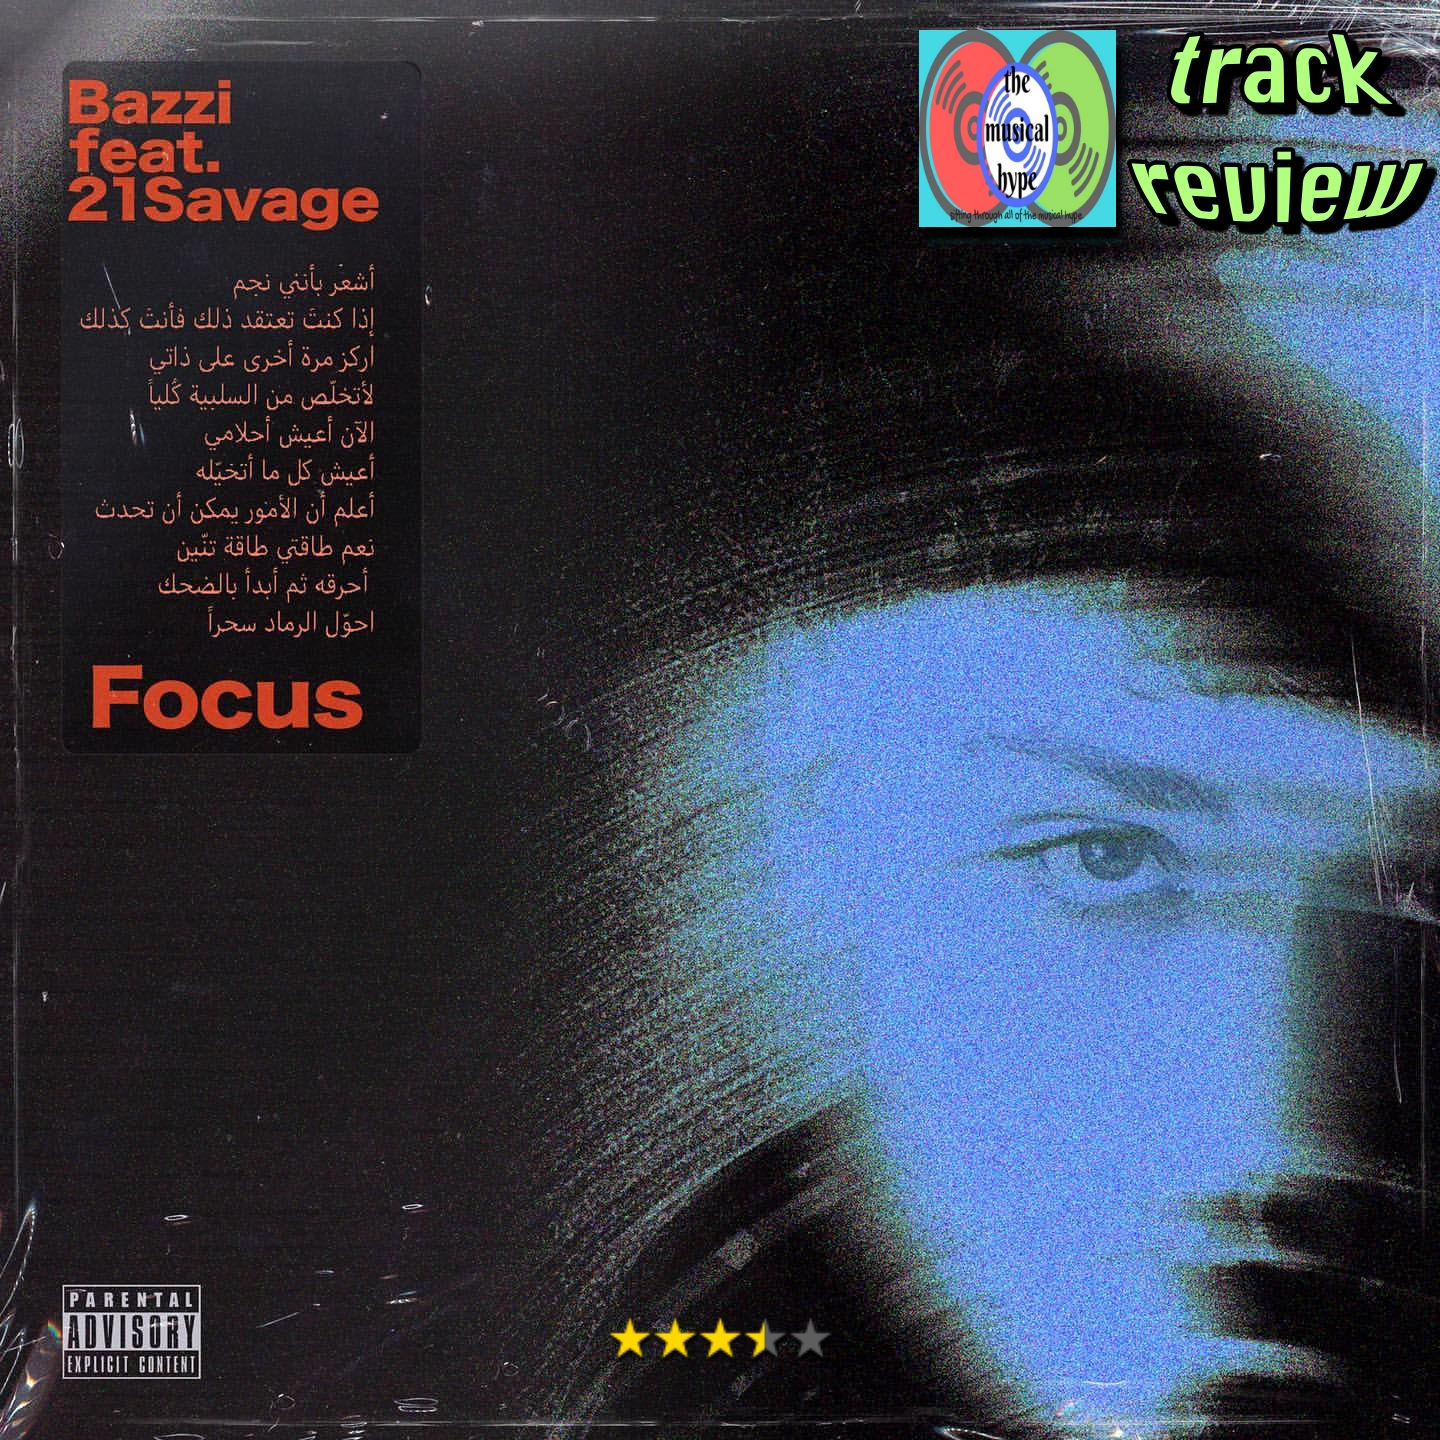 Bazzi, Focus | Track Review